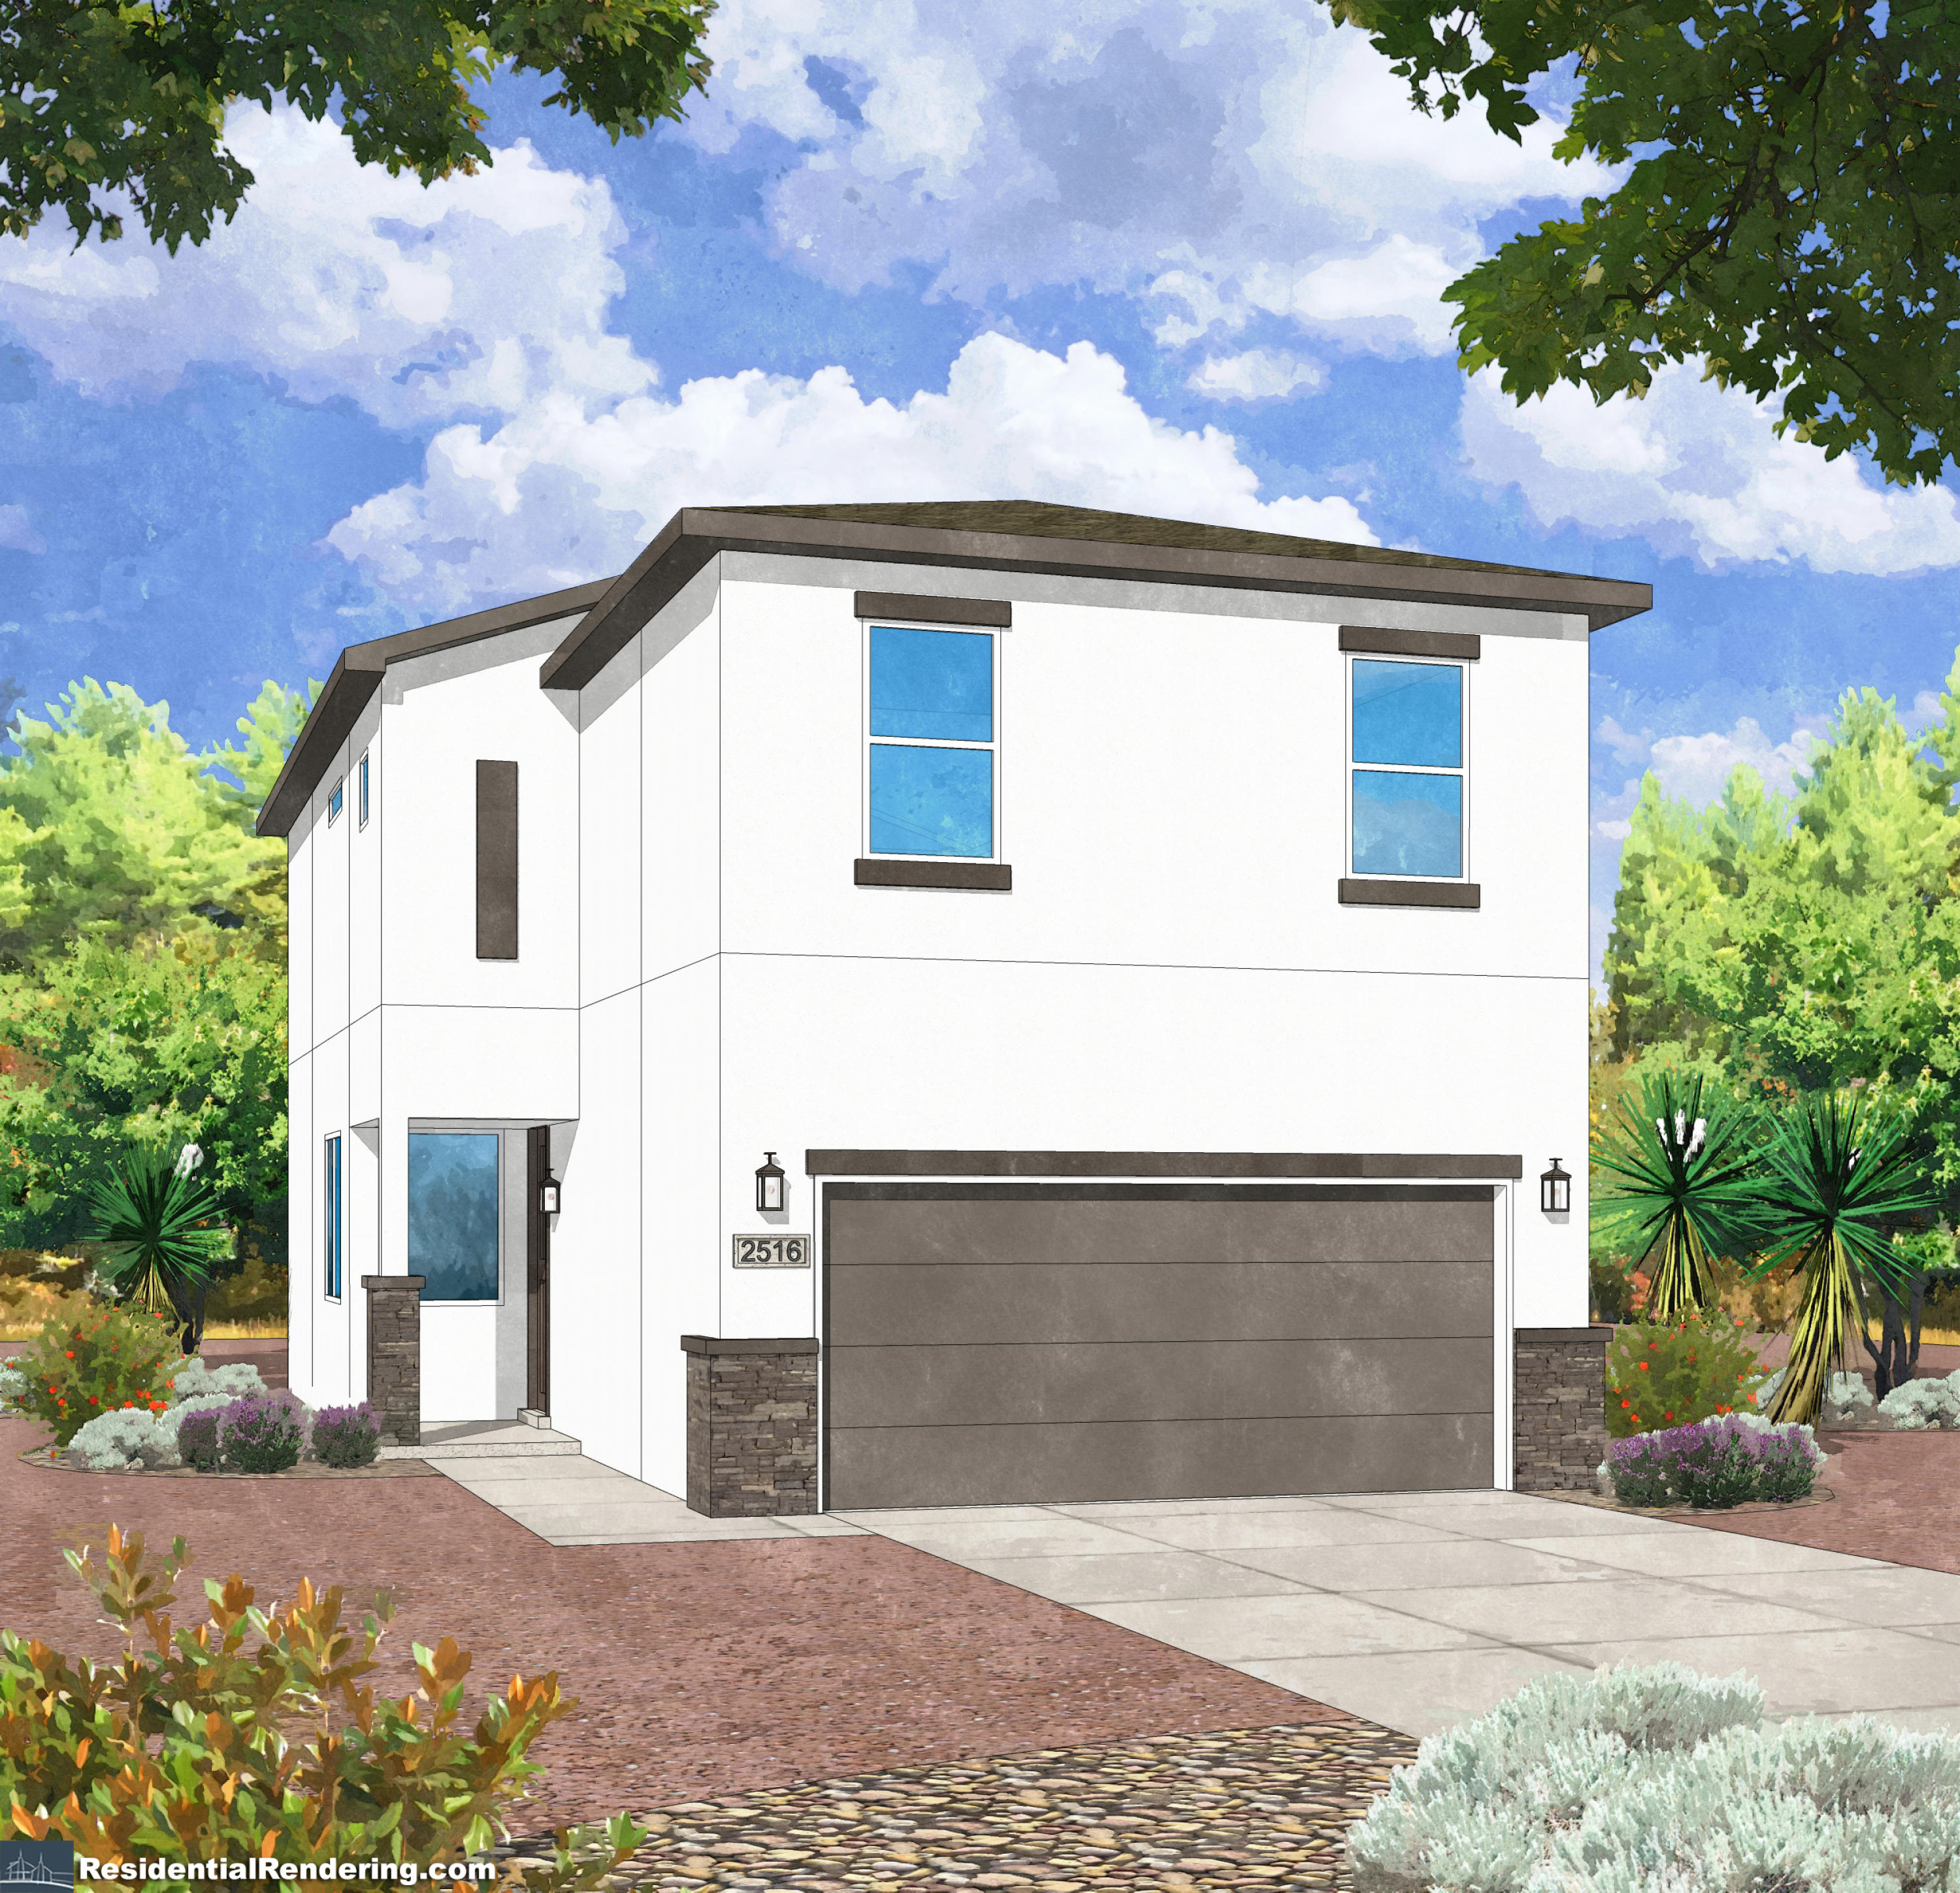 Welcome to Park View by Amreston Homes! A brand new Rio Rancho community in the Heart of North Hills! A bright and open kitchen features solid granite countertops, kitchen island, staggered maple cabinets with 3'' crown molding. GE slate colored appliances including a 30'' gas range, and energy star dishwasher. The bathrooms are outfitted with designer tile shower surrounds, granite vanities, and granite backsplash. Energy-efficient features include a tankless water heater, Carrier 14.0 SEER Refrigerated AC, Low E vinyl windows. Additional upgrades include owner suite walk-in closet, raised panel interior doors, satin nickel finish lighting package, Decora electrical switches. Front yard landscaping included!